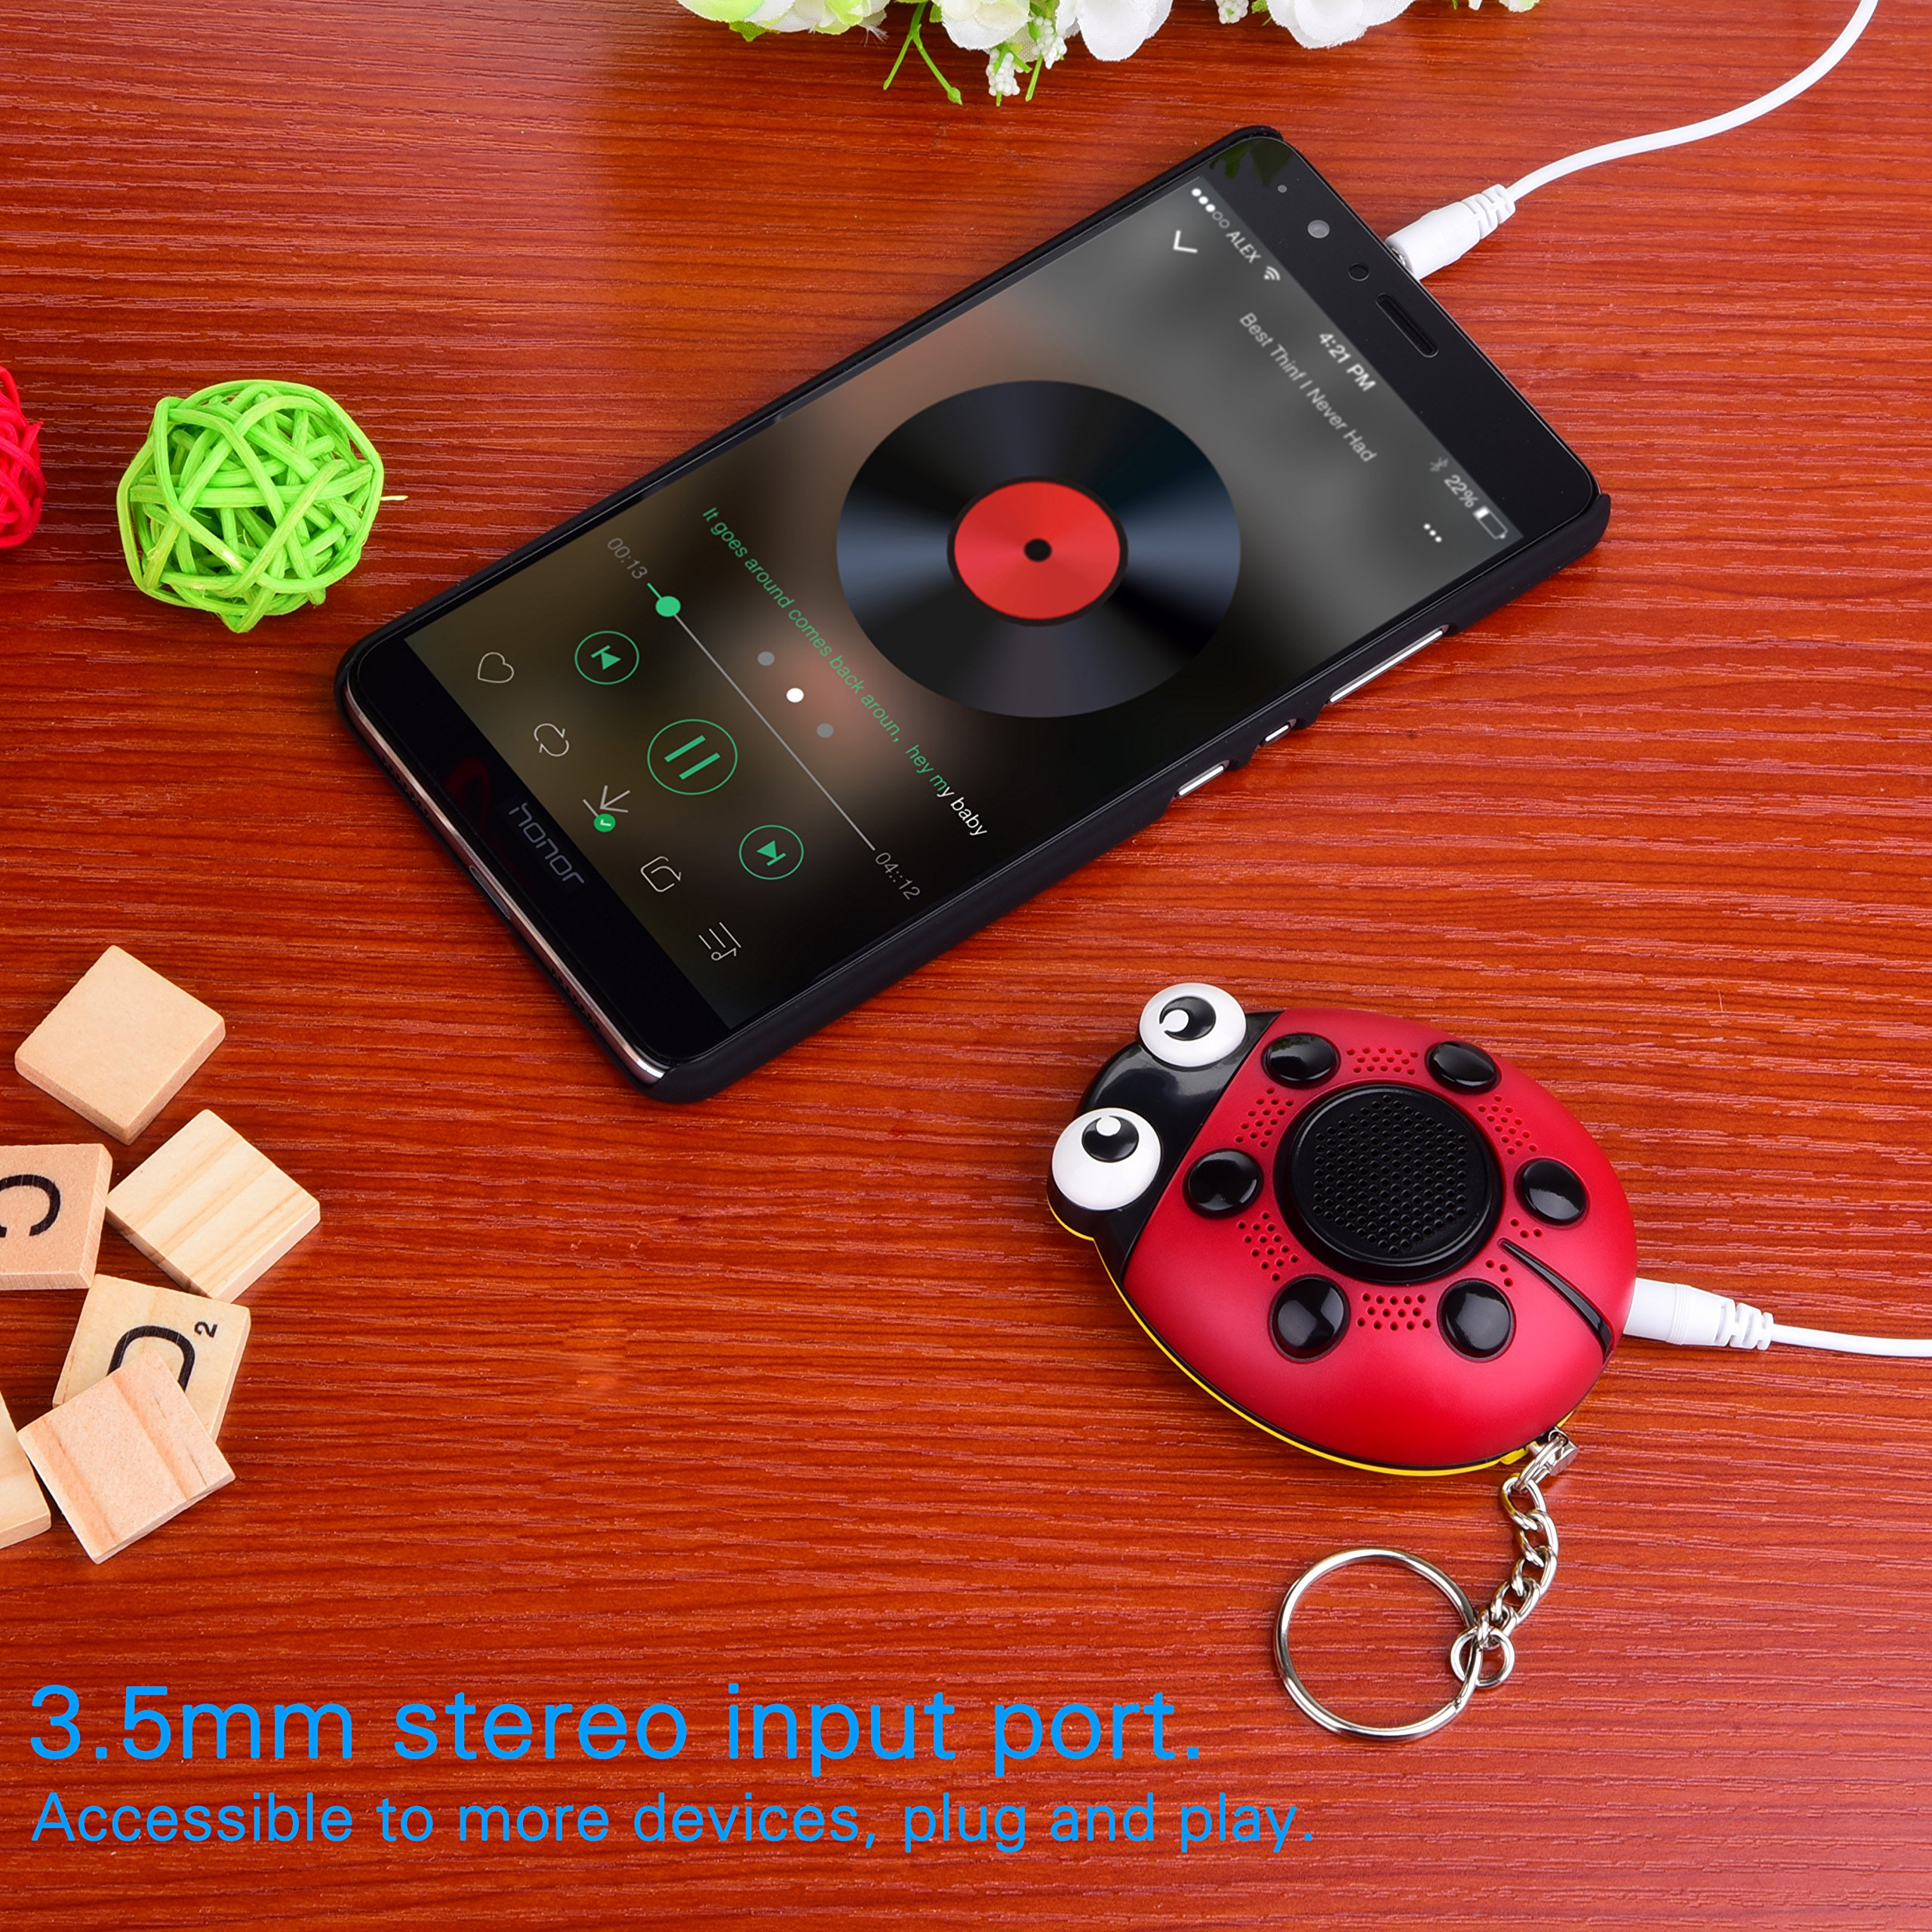 iDaye 130DB SOS with siren song voice Ladybug Emergency Personal alarm keychain,Protection Device with colorful flash work for kids/elderlies/owls and adults,Used as a speaker or electric torch. by iDaye (Image #6)